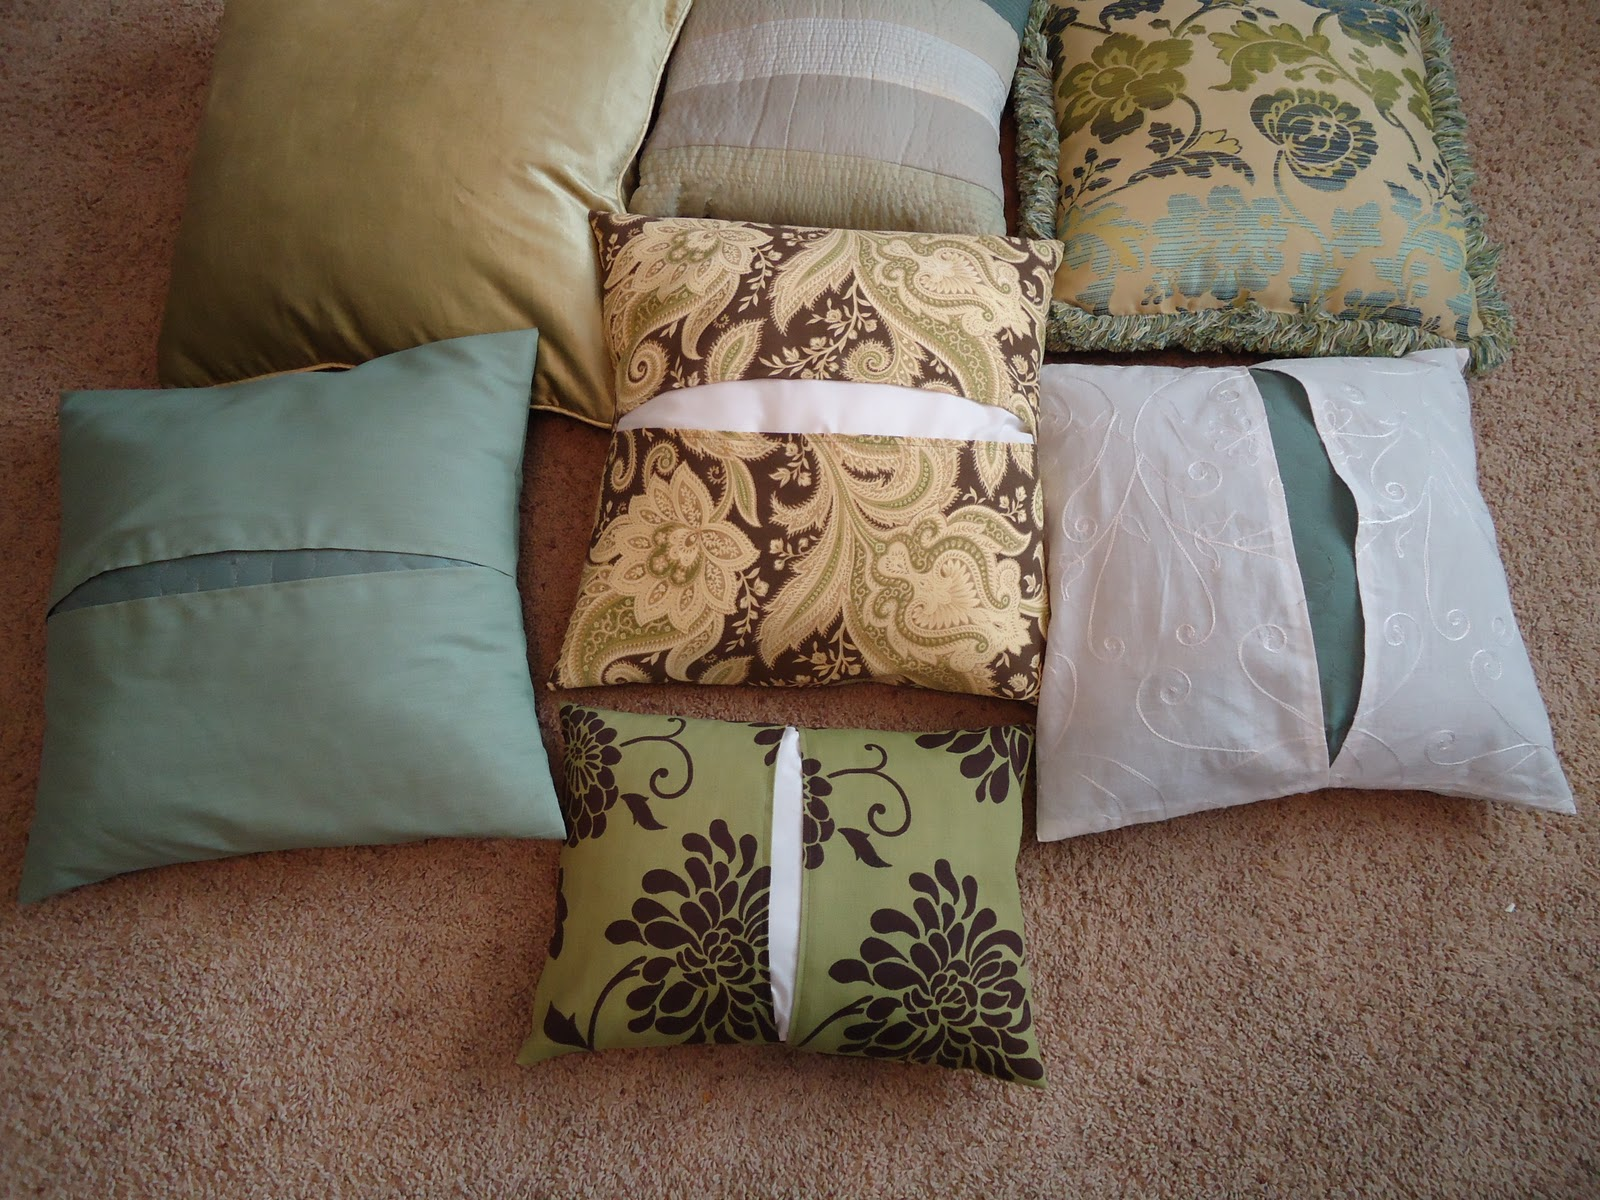 Decorative Pillows At Hobby Lobby : Life on Purpose: New Pillows